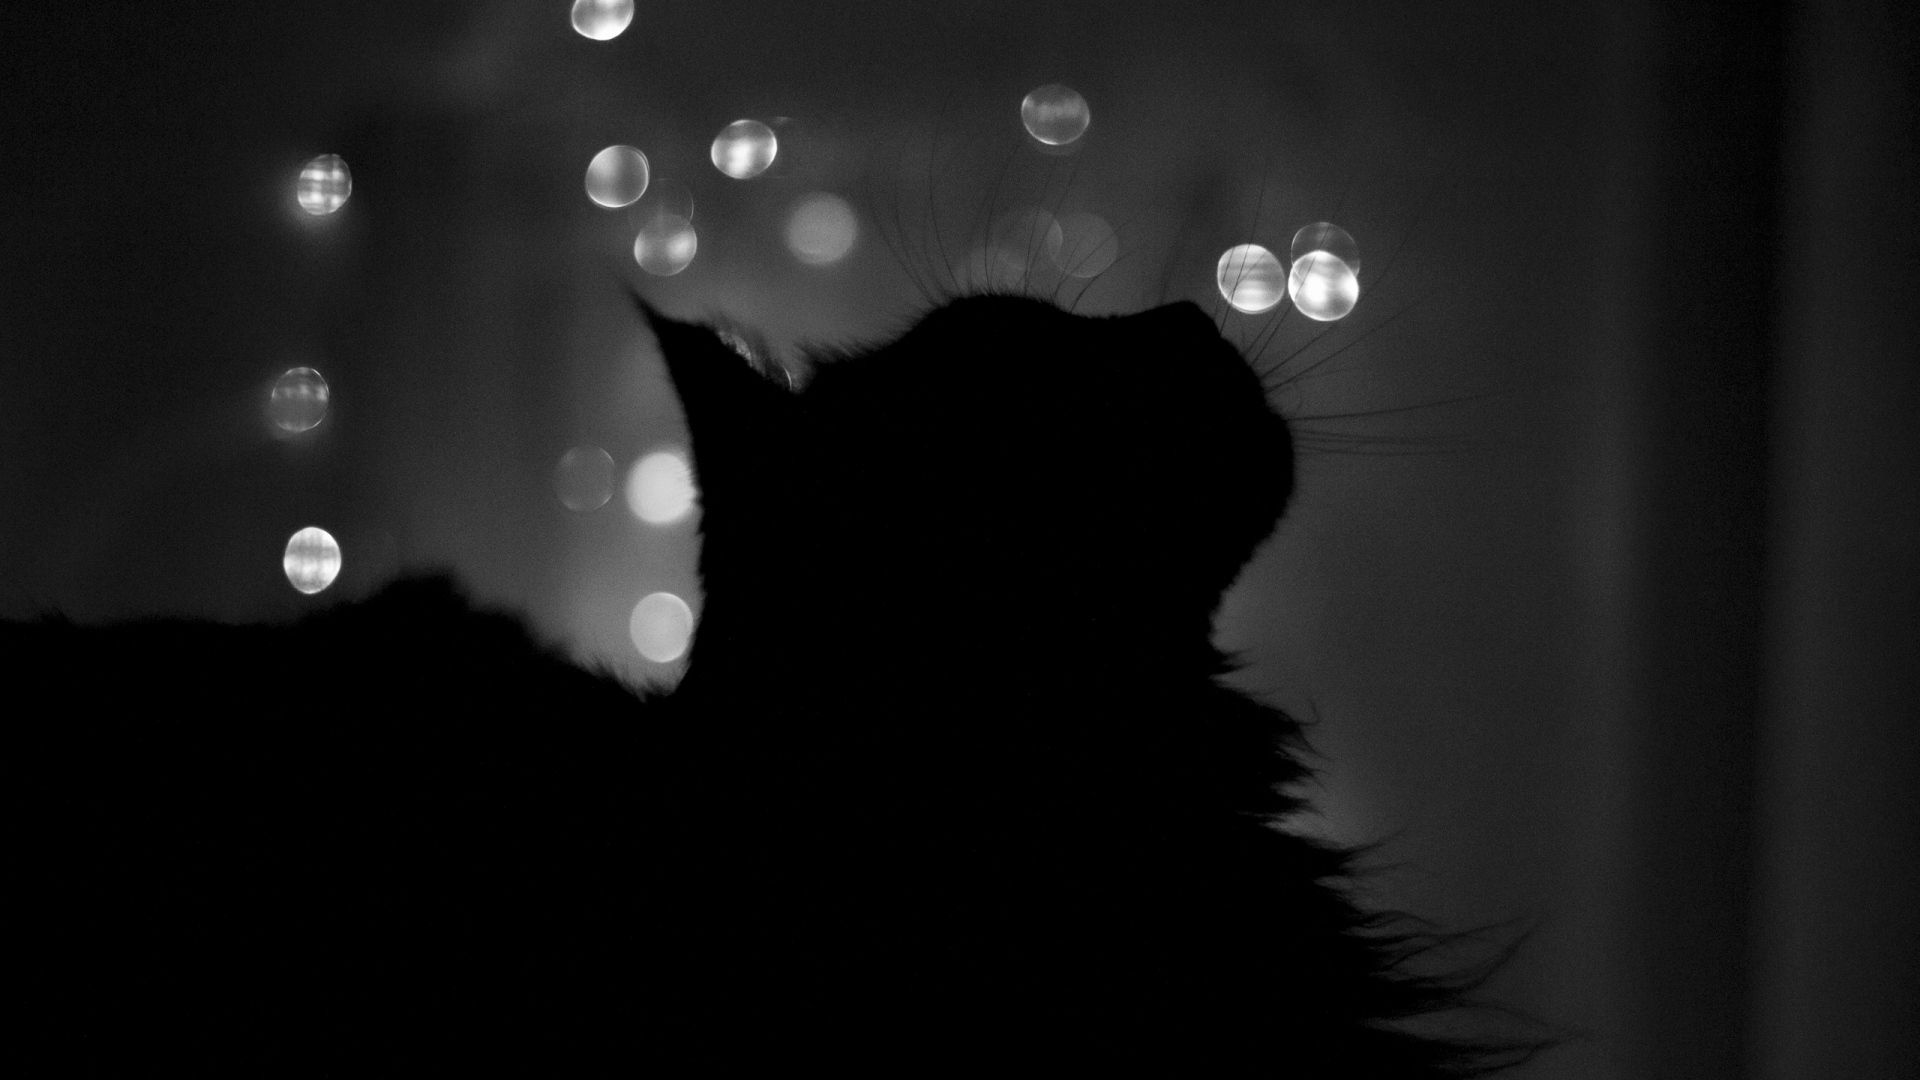 Download Wallpaper 1920x1080 Cat Shadow Highlights Features